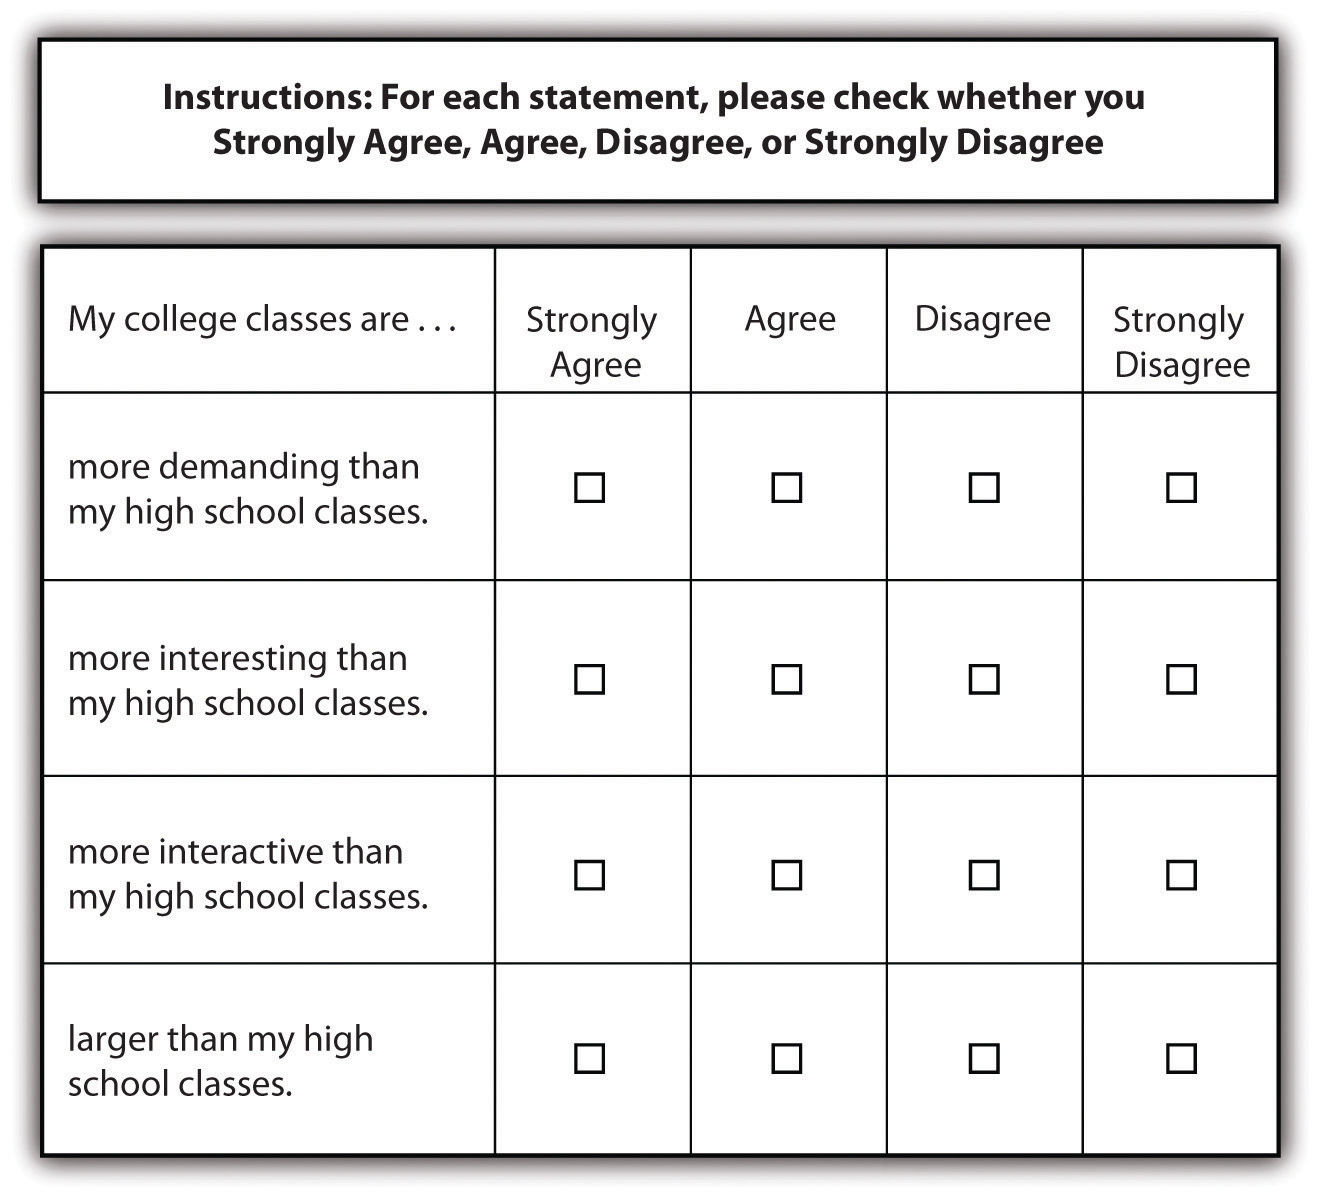 essay stress sample questionnaire for thesis about stress buy  sample questionnaire for thesis about stress buy essay from sample questionnaire for thesis about stress